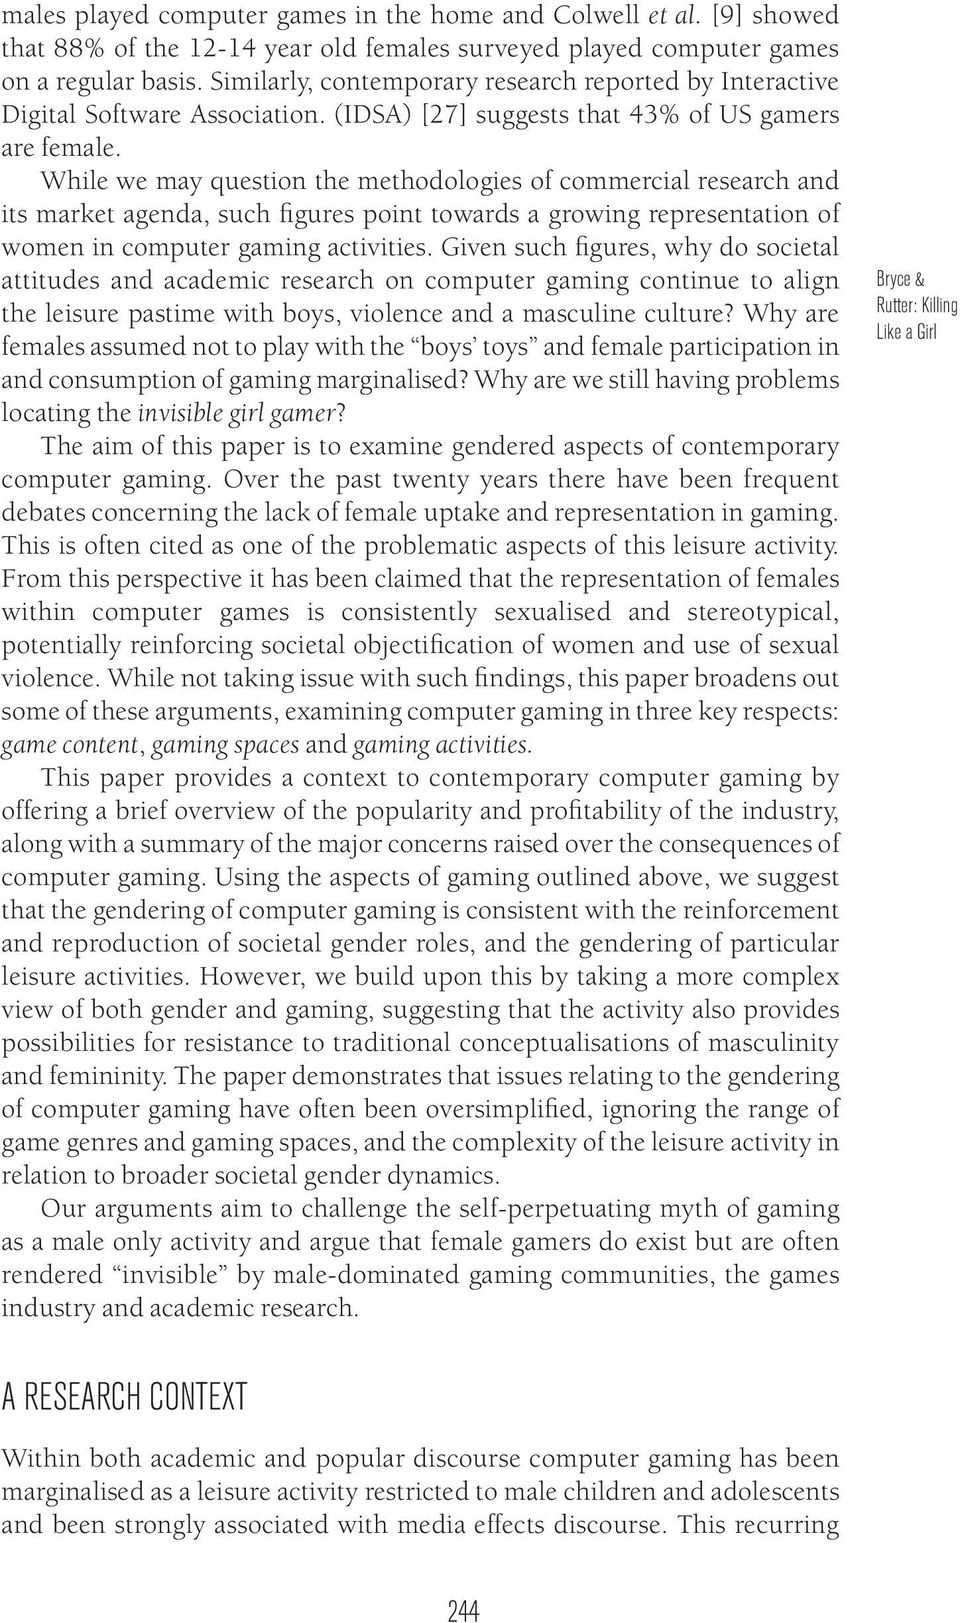 While we may question the methodologies of commercial research and its market agenda, such figures point towards a growing representation of women in computer gaming activities.